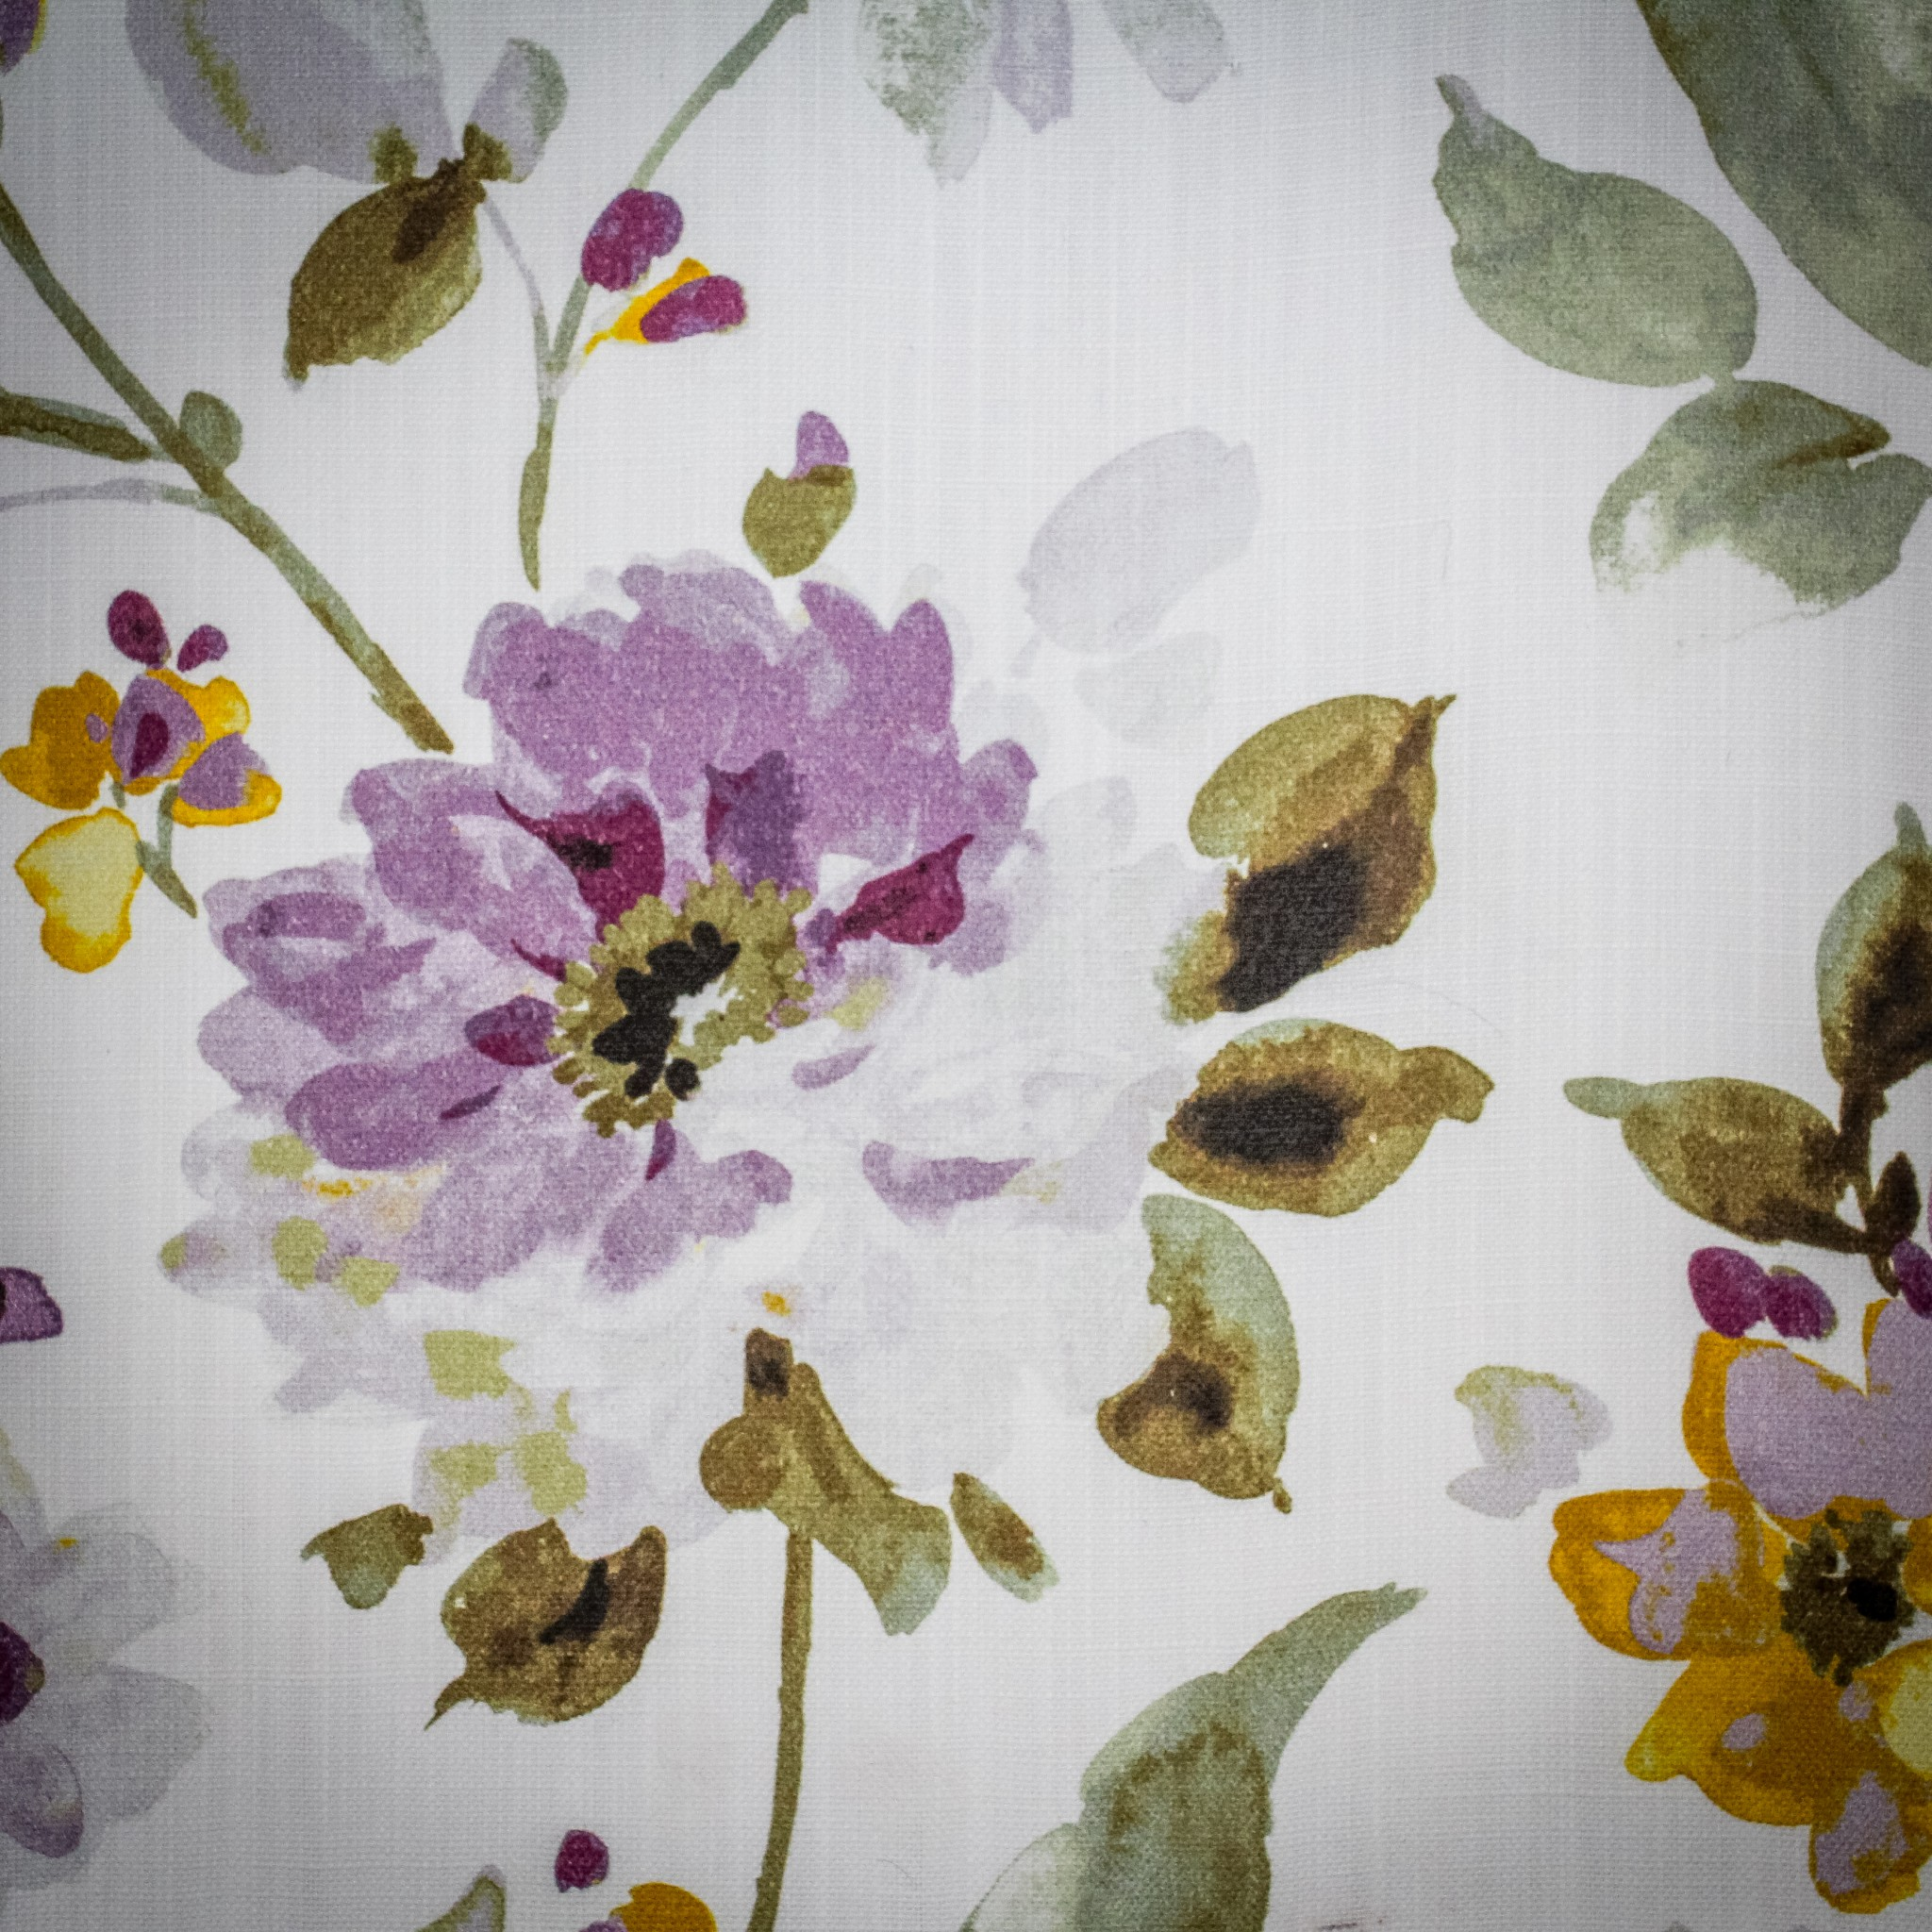 Watercolour fabric with purple and yellow flowers